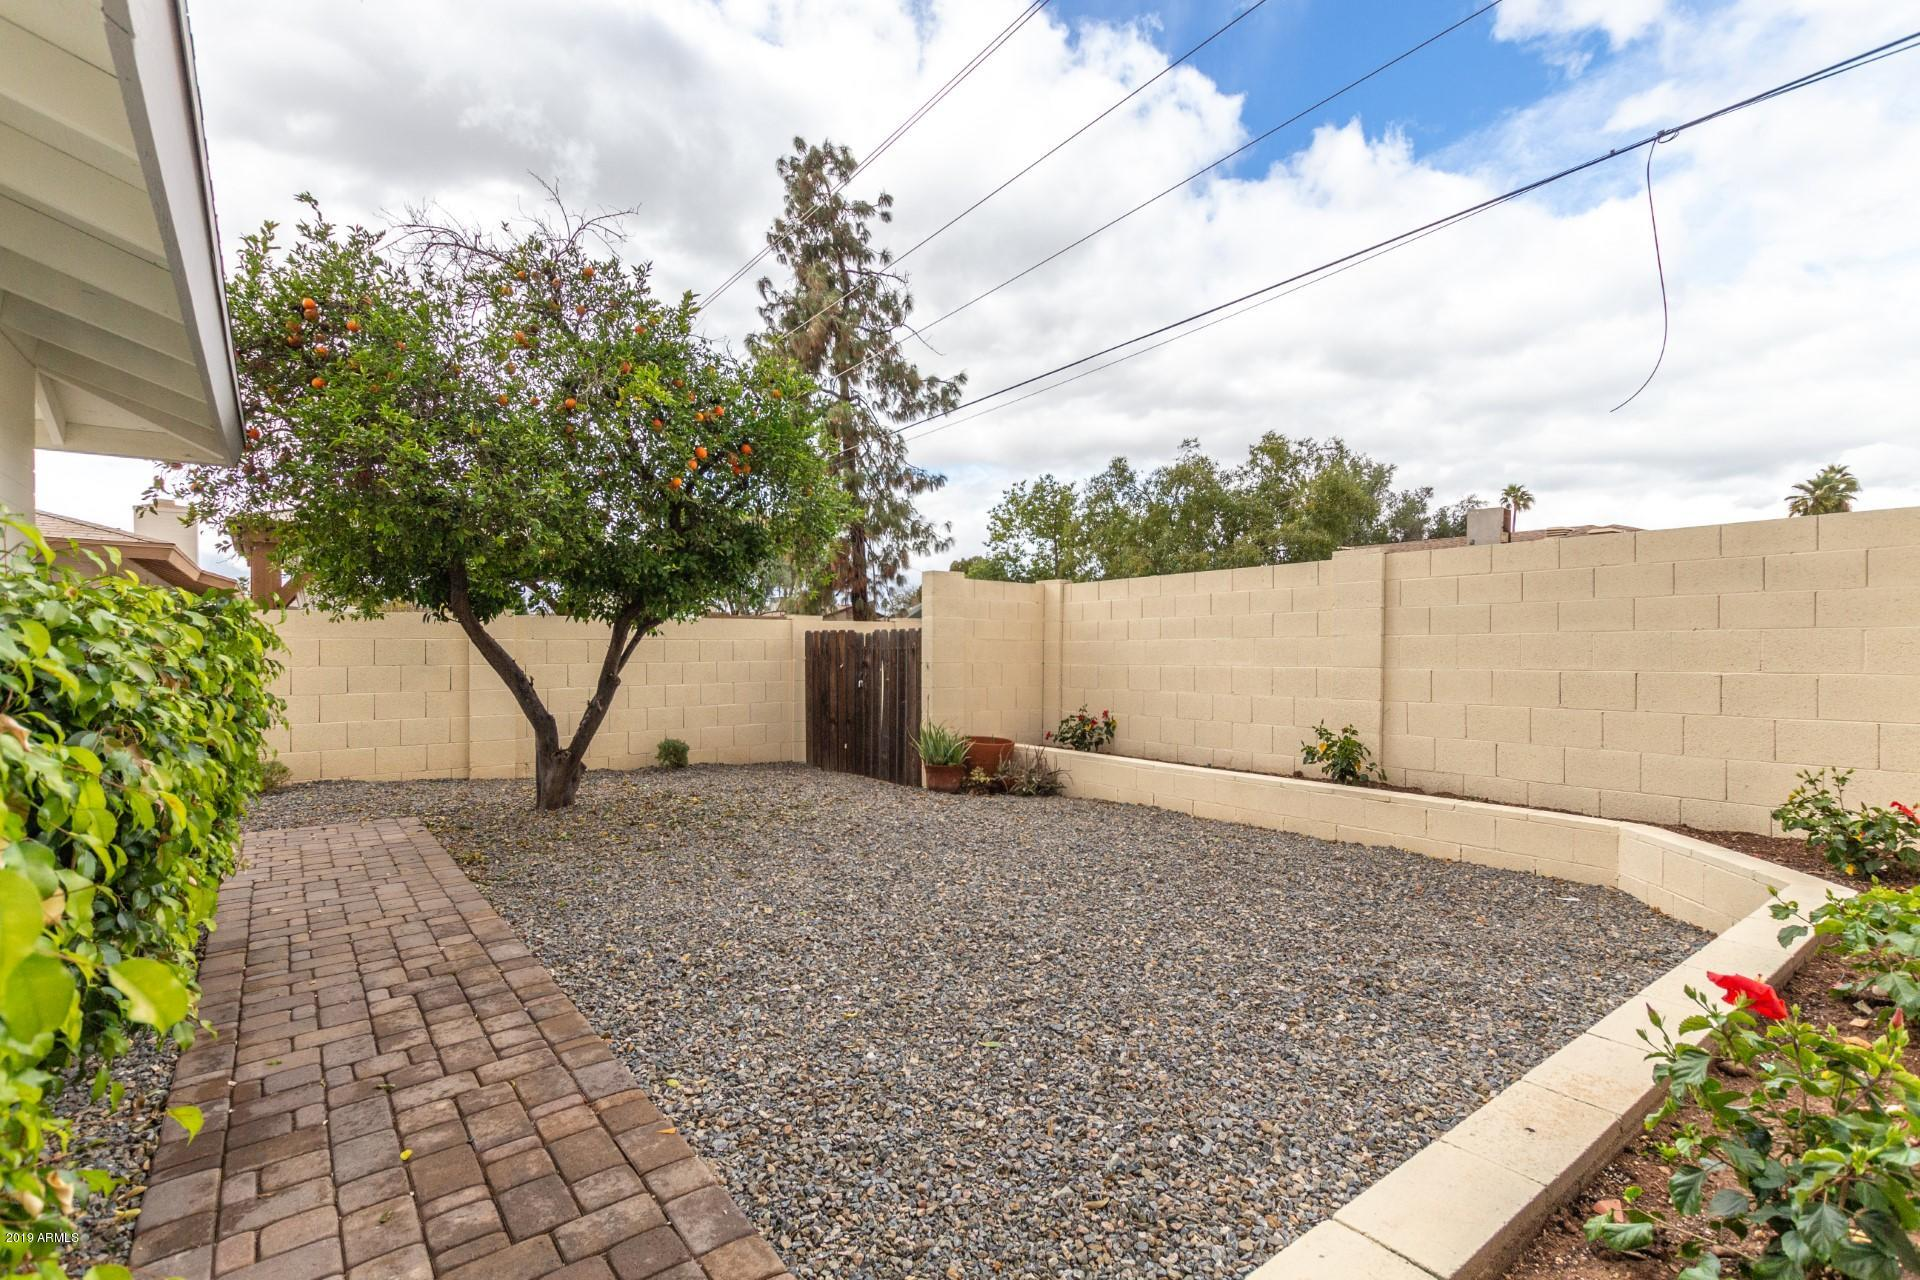 MLS 5878698 2502 E HUNTINGTON Drive, Tempe, AZ 85282 Tempe AZ Tempe Royal Palms